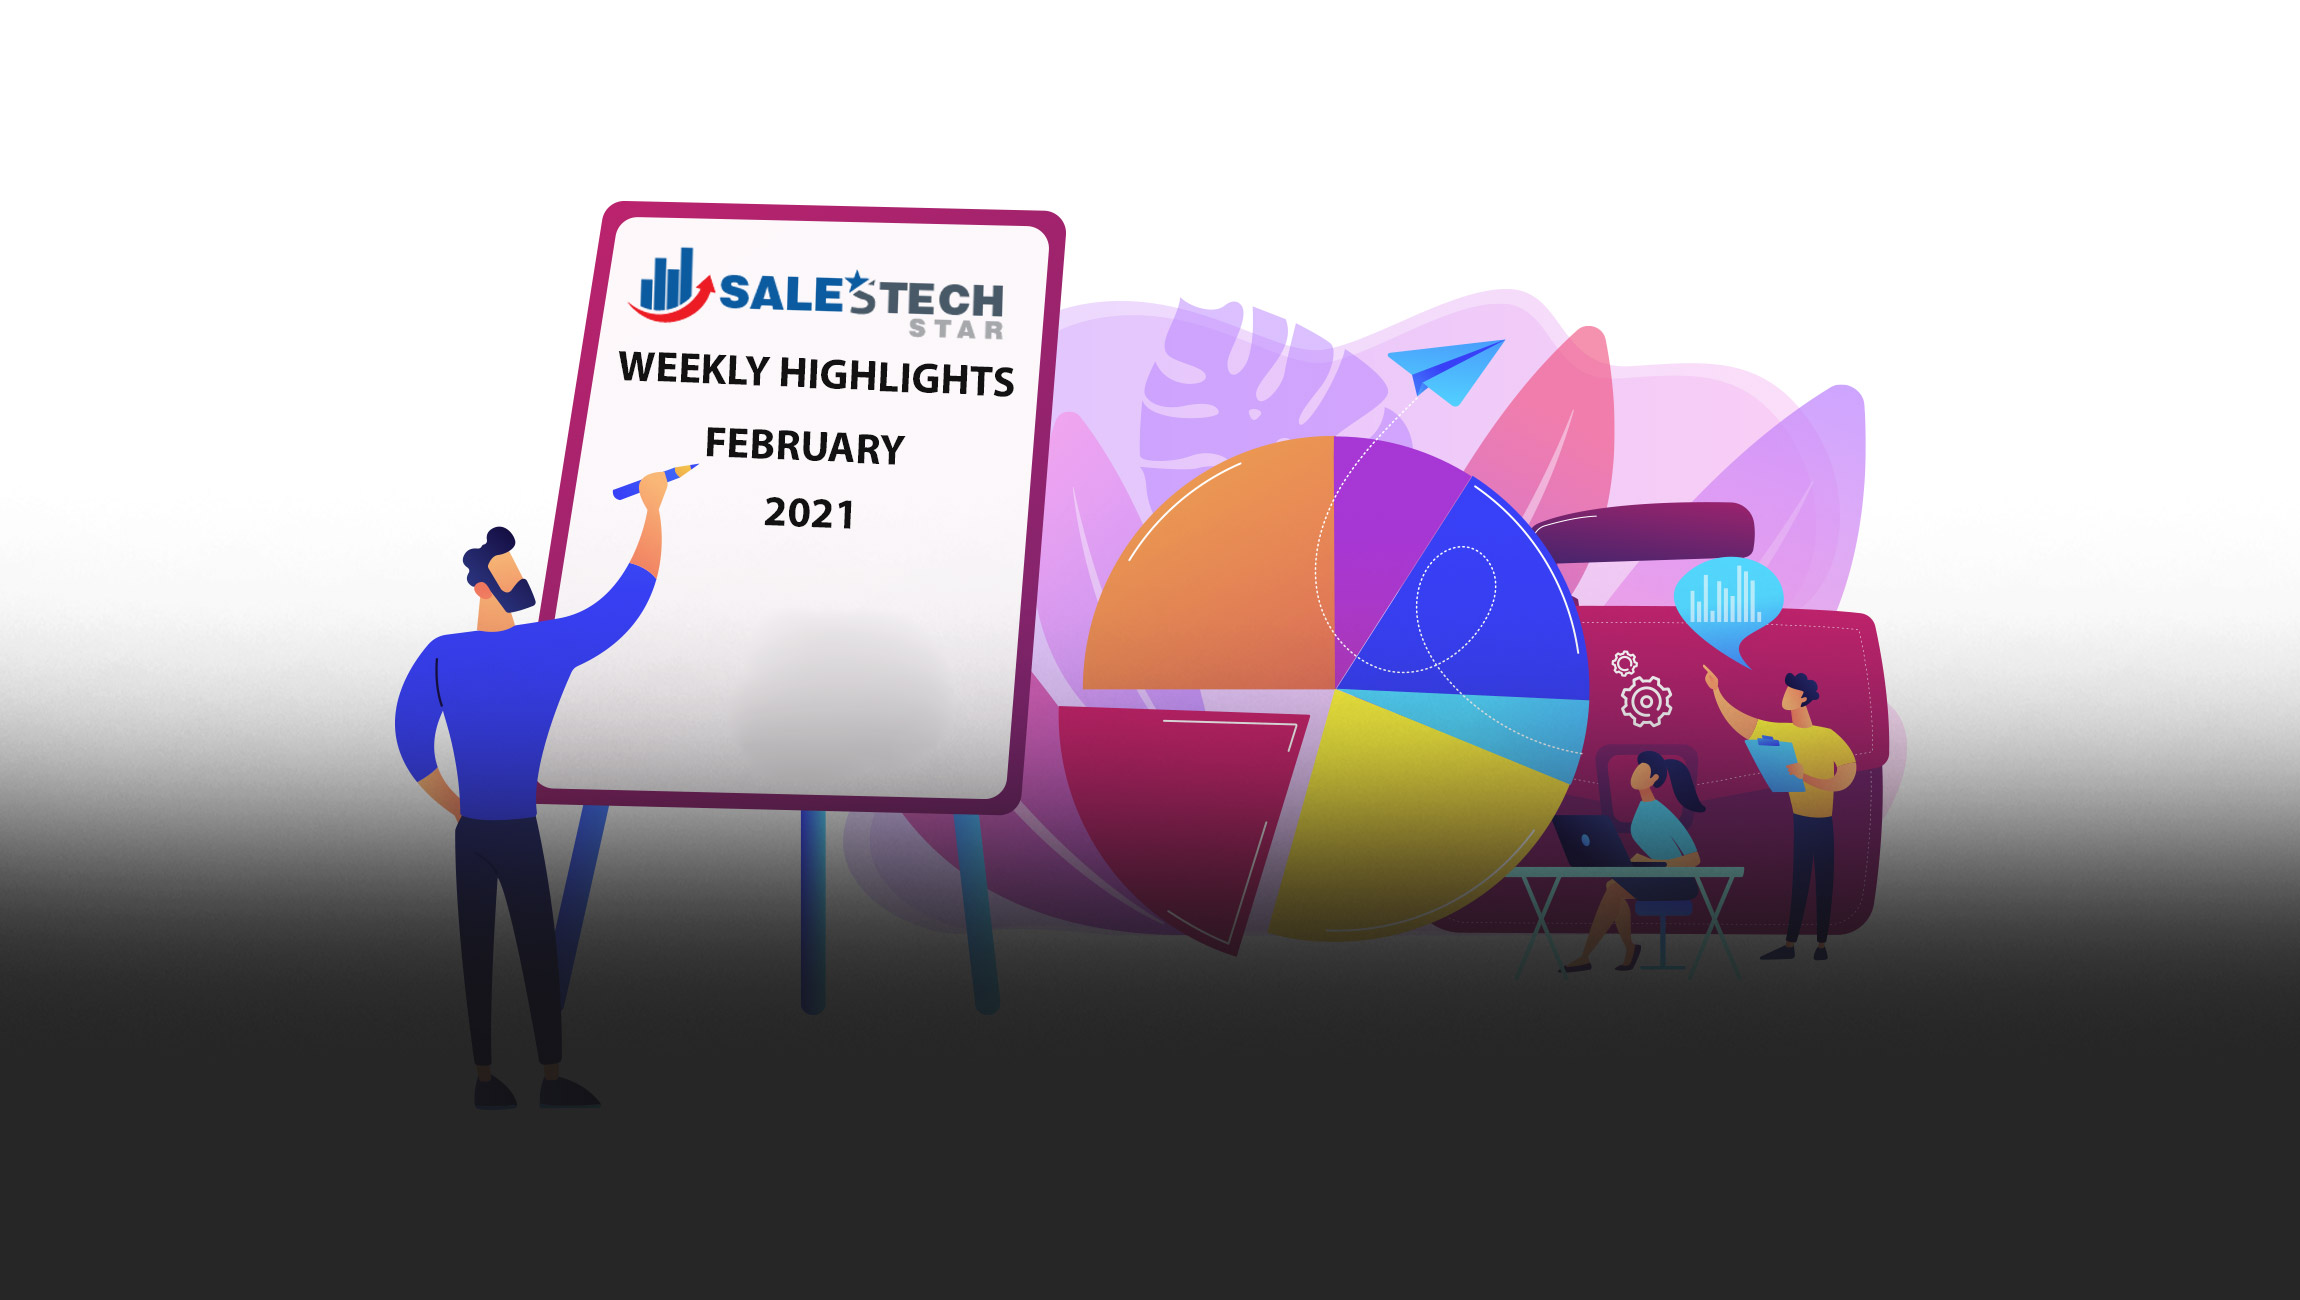 Sales Technology Highlights of The Week: 15-February-2021: Featuring Sisense, Alteryx, IBM, WPP and Hewlett Packard!